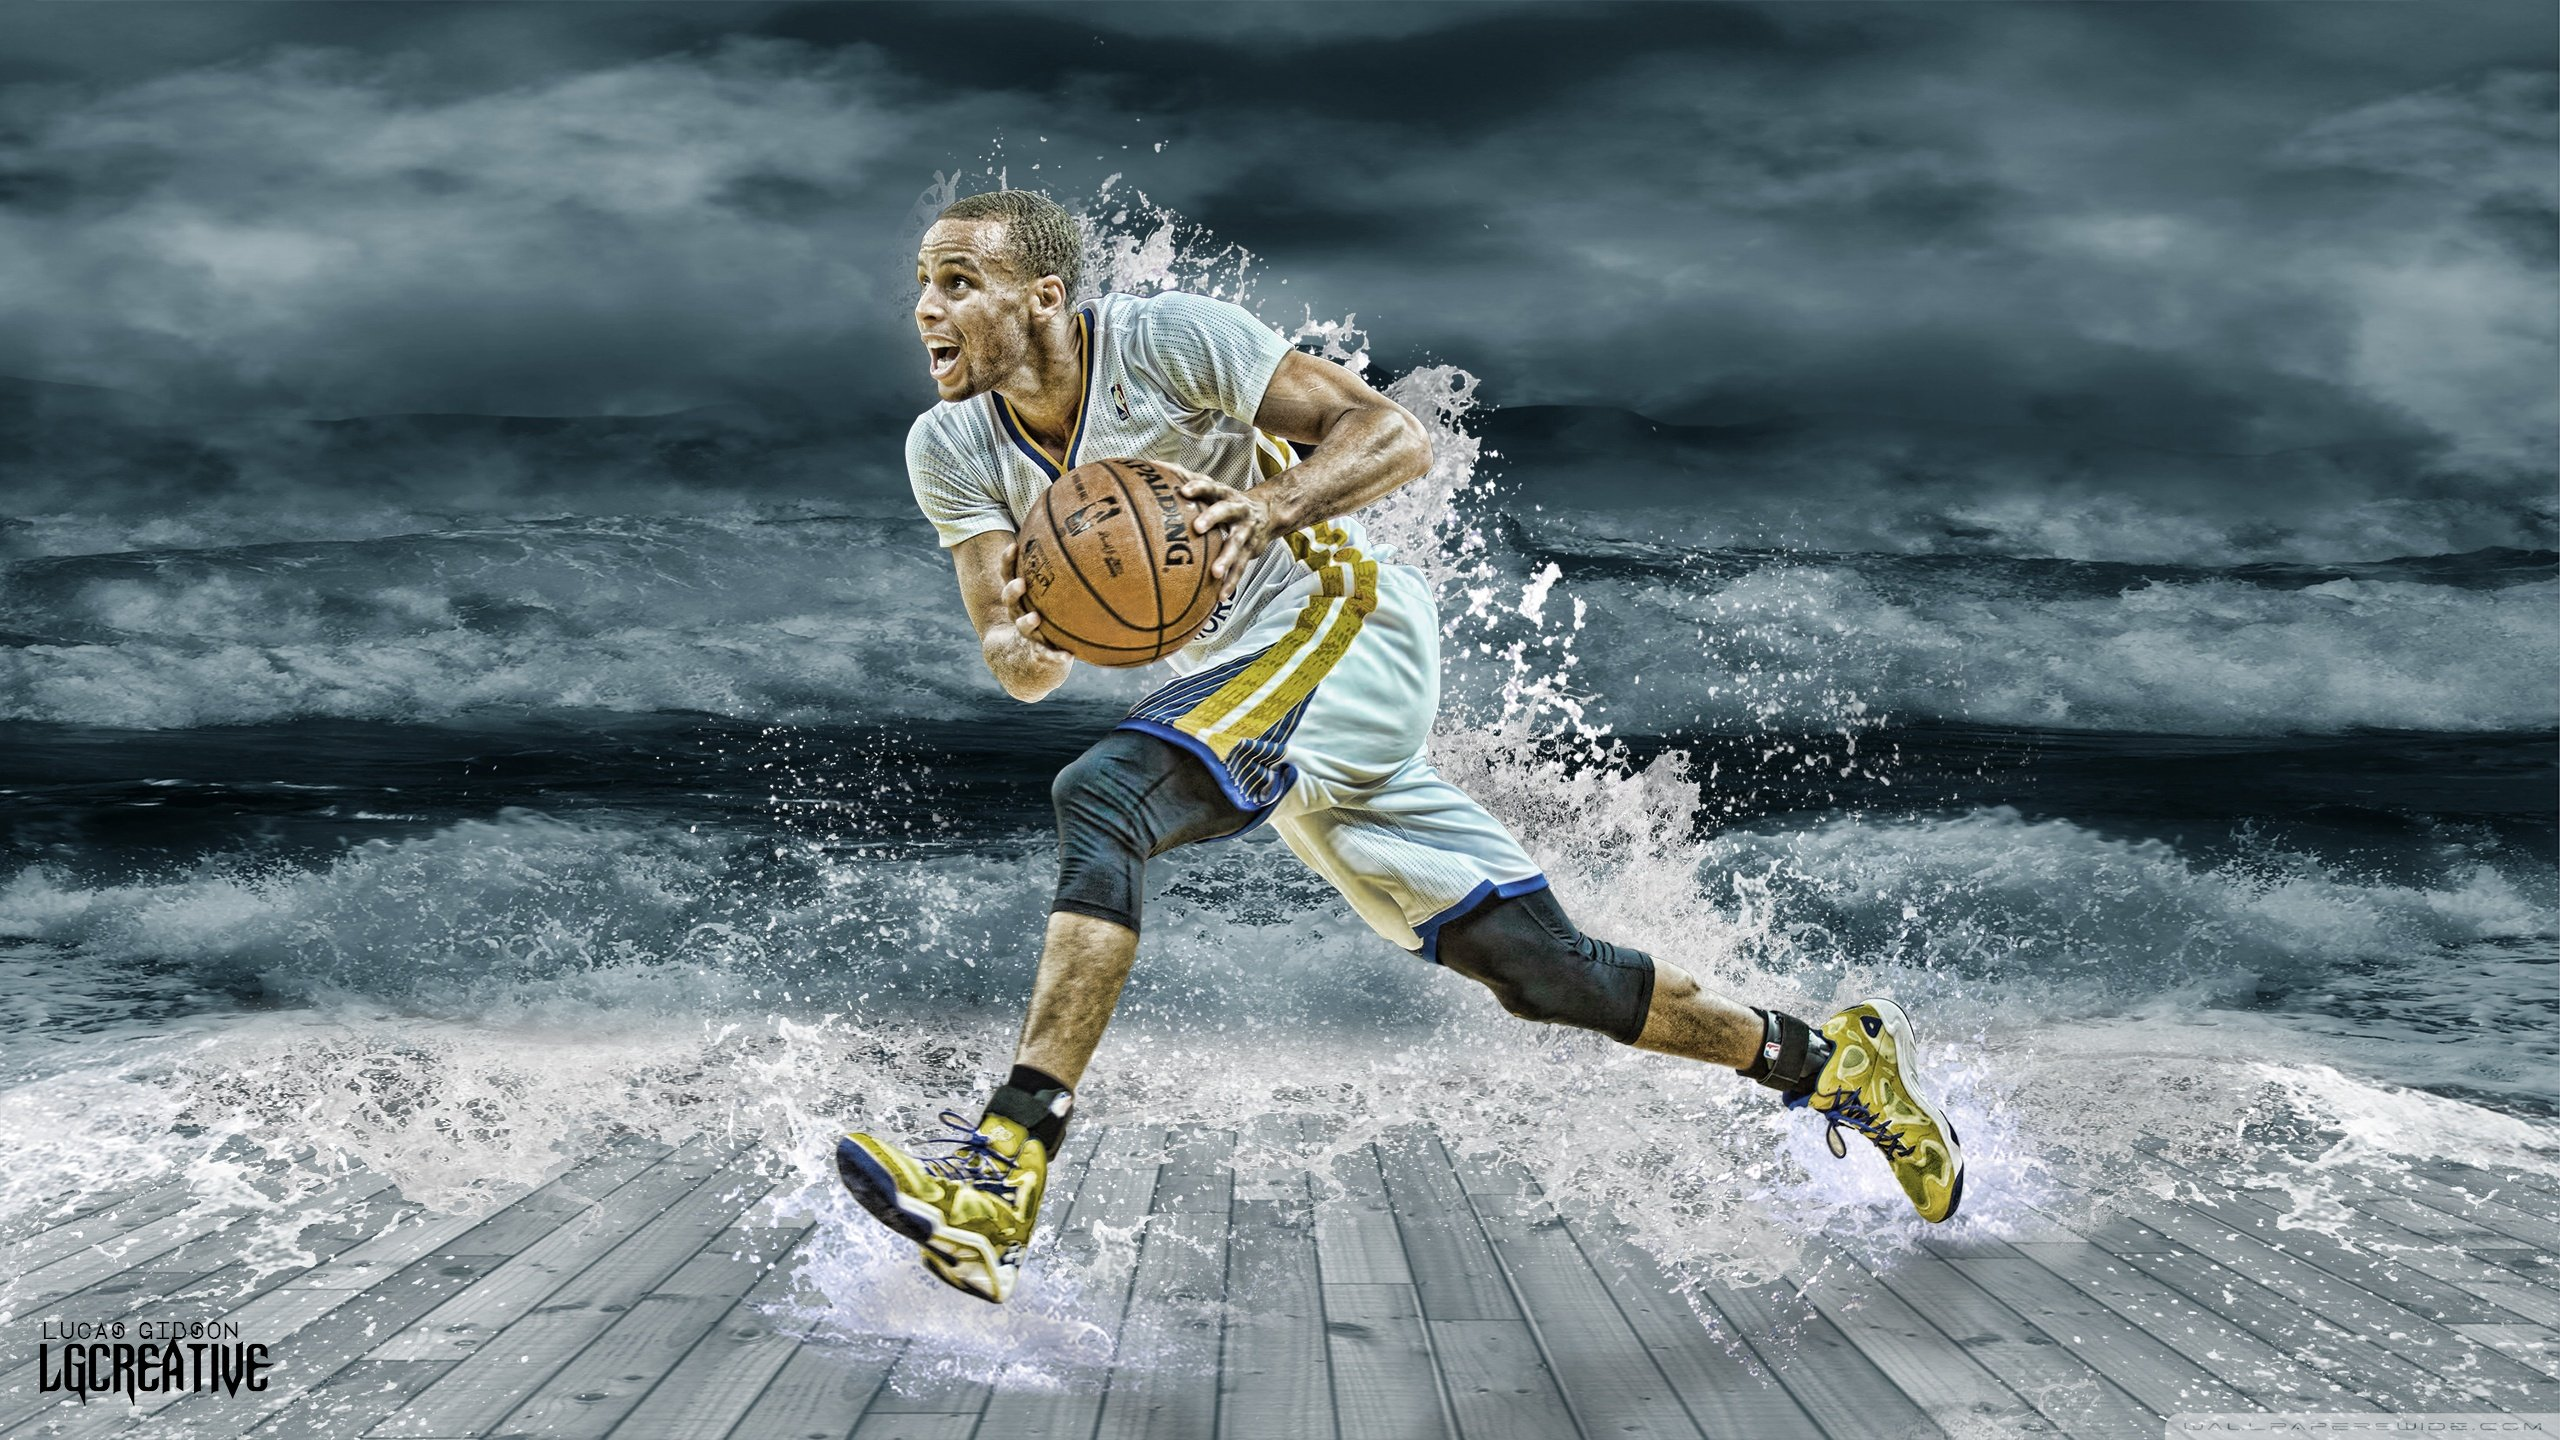 stephen curry drops 34 points houston game 1 win video 2 stephen 2560x1440